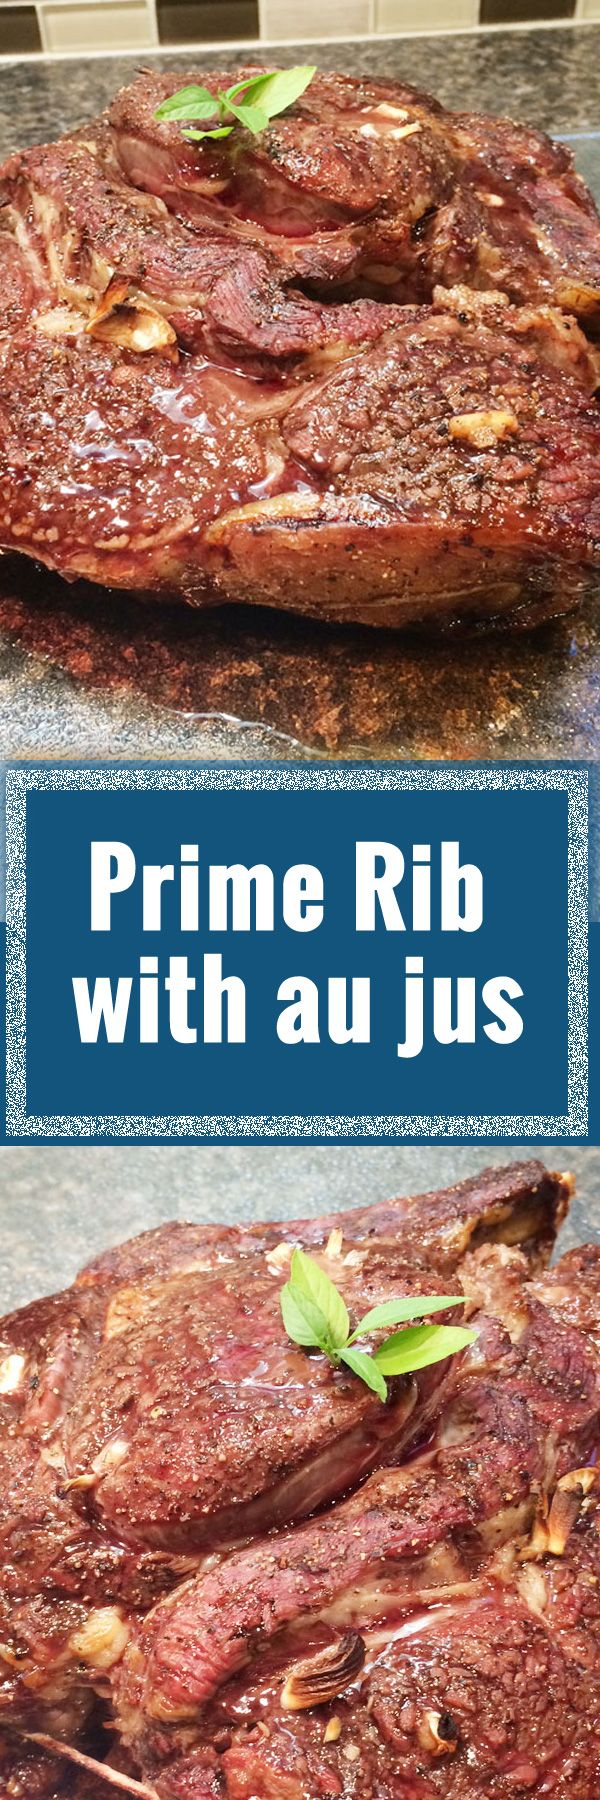 Prime Rib with au jus. Most tender and juicy prime rib EVER!